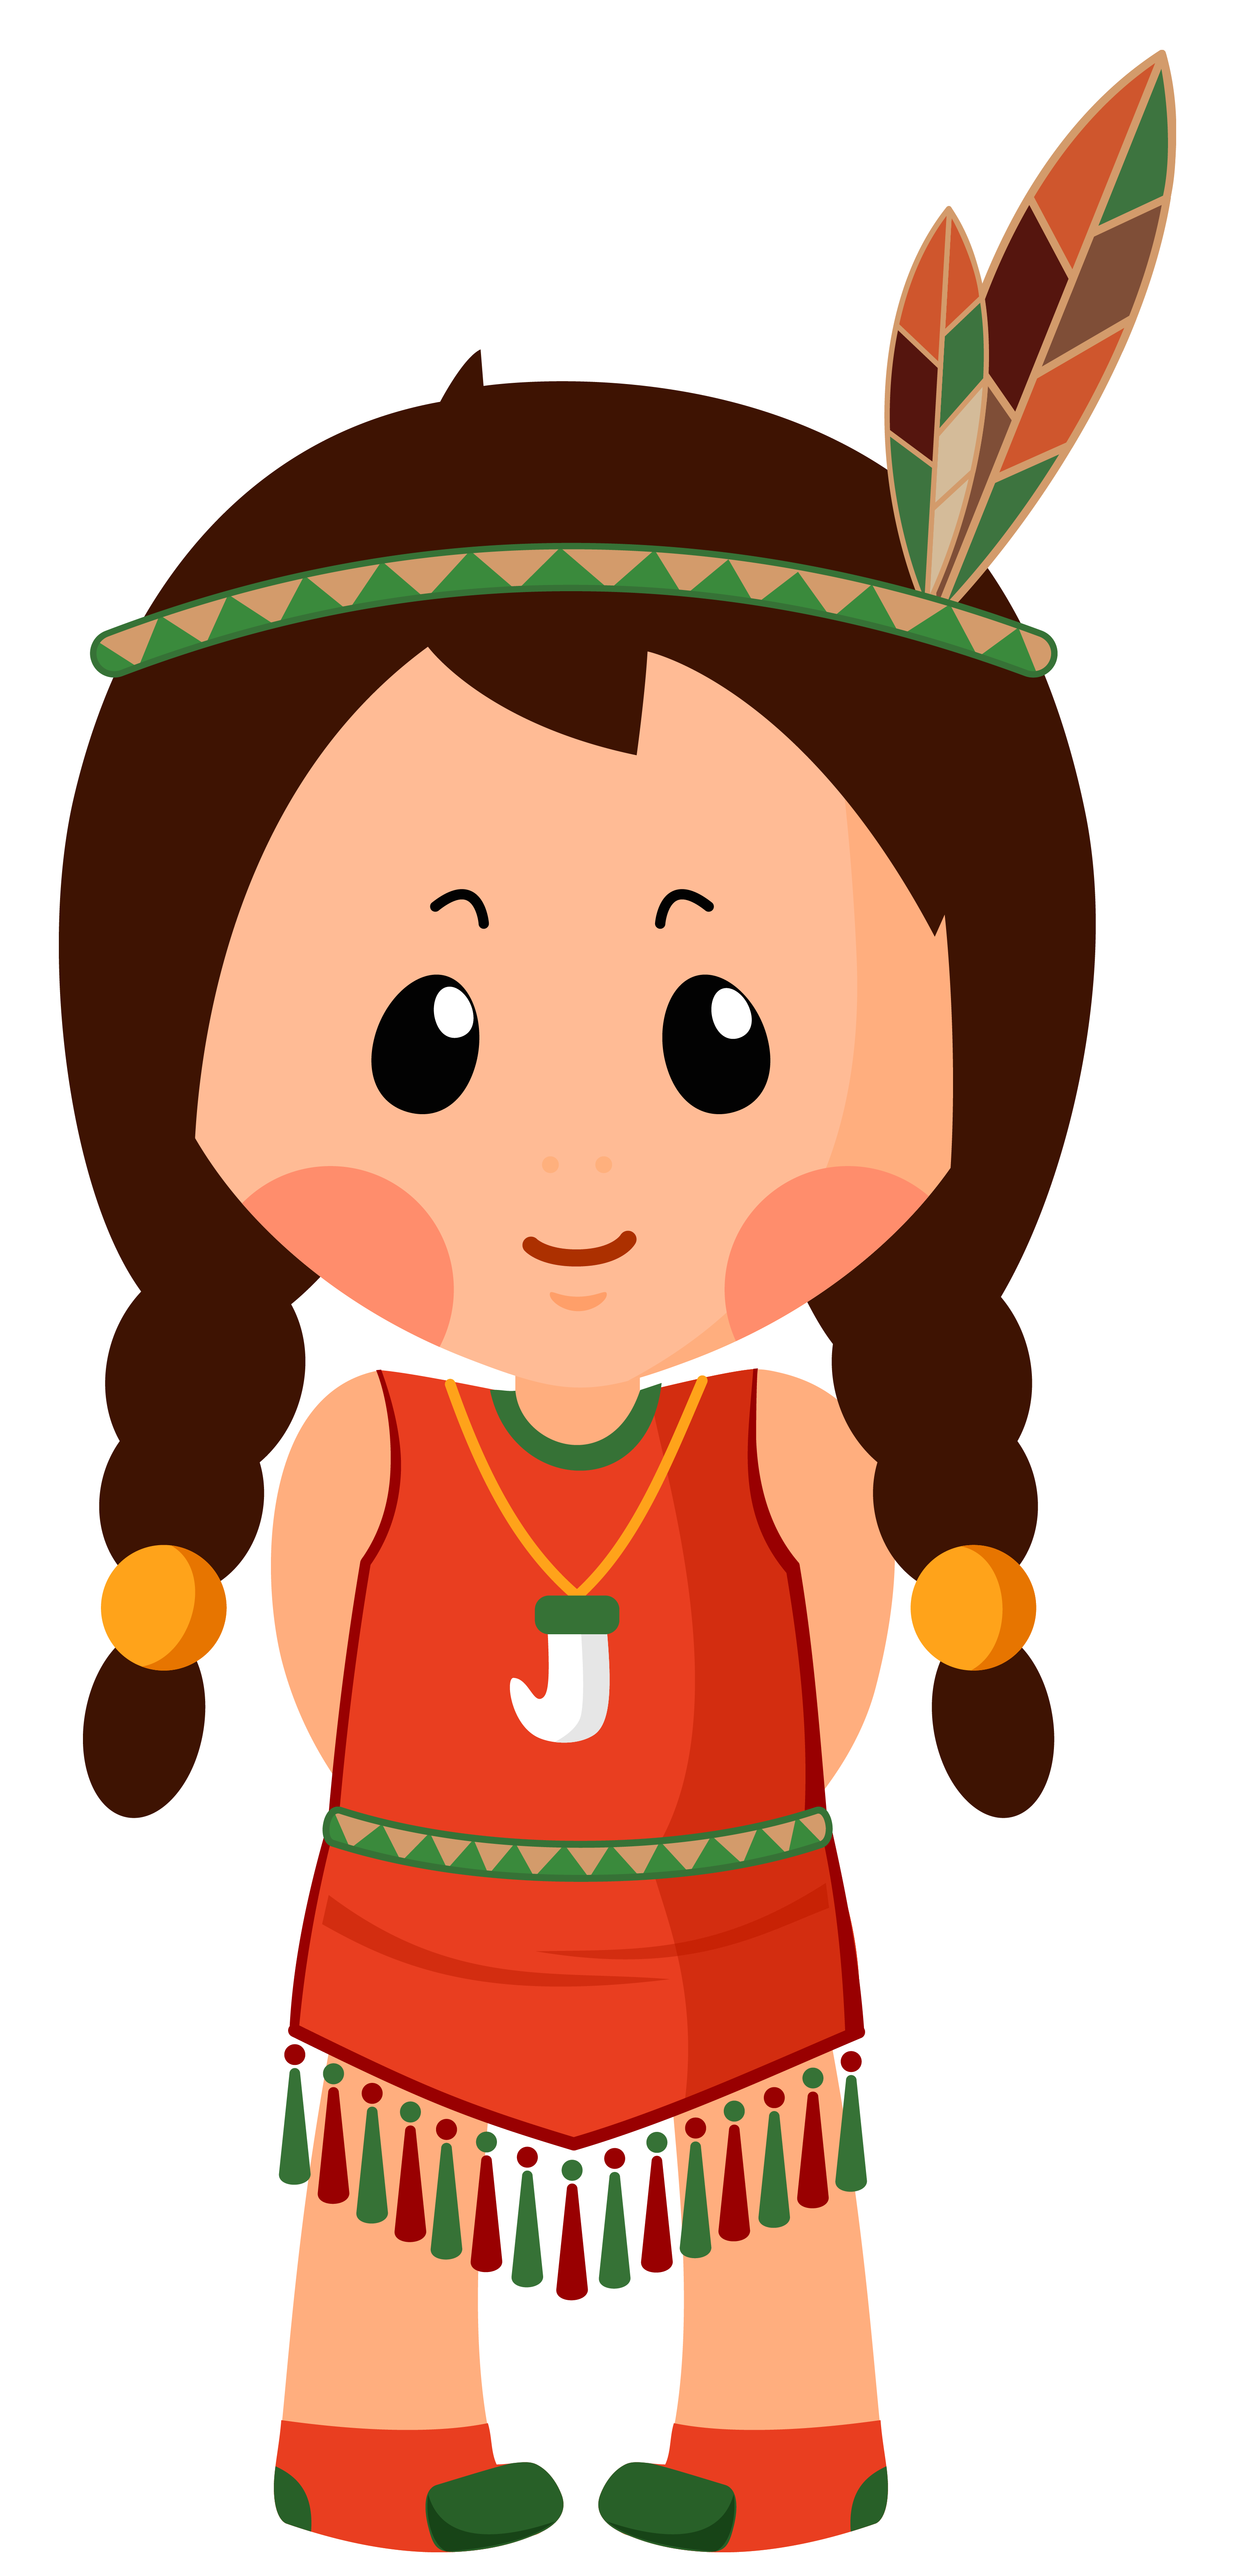 freeuse download Girl clipar png image. Native american clipart.